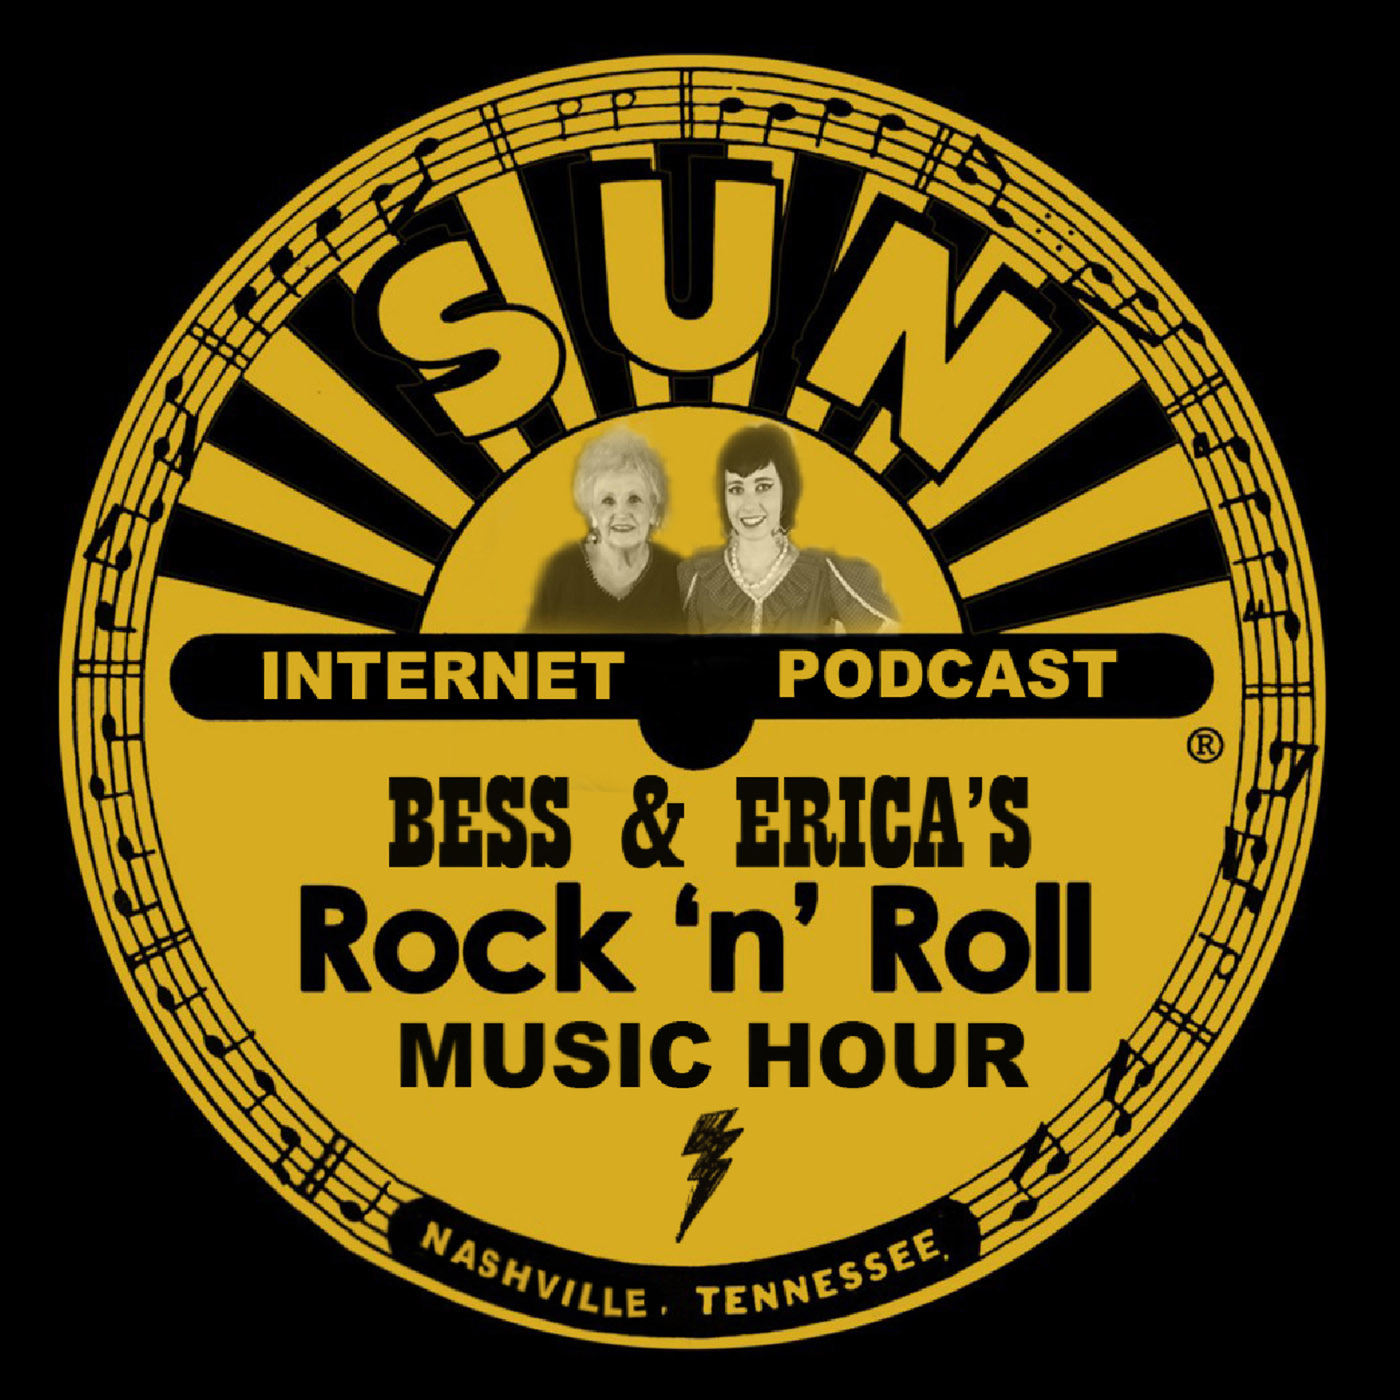 Bess & Erica's Rock 'N' Roll Music Hour